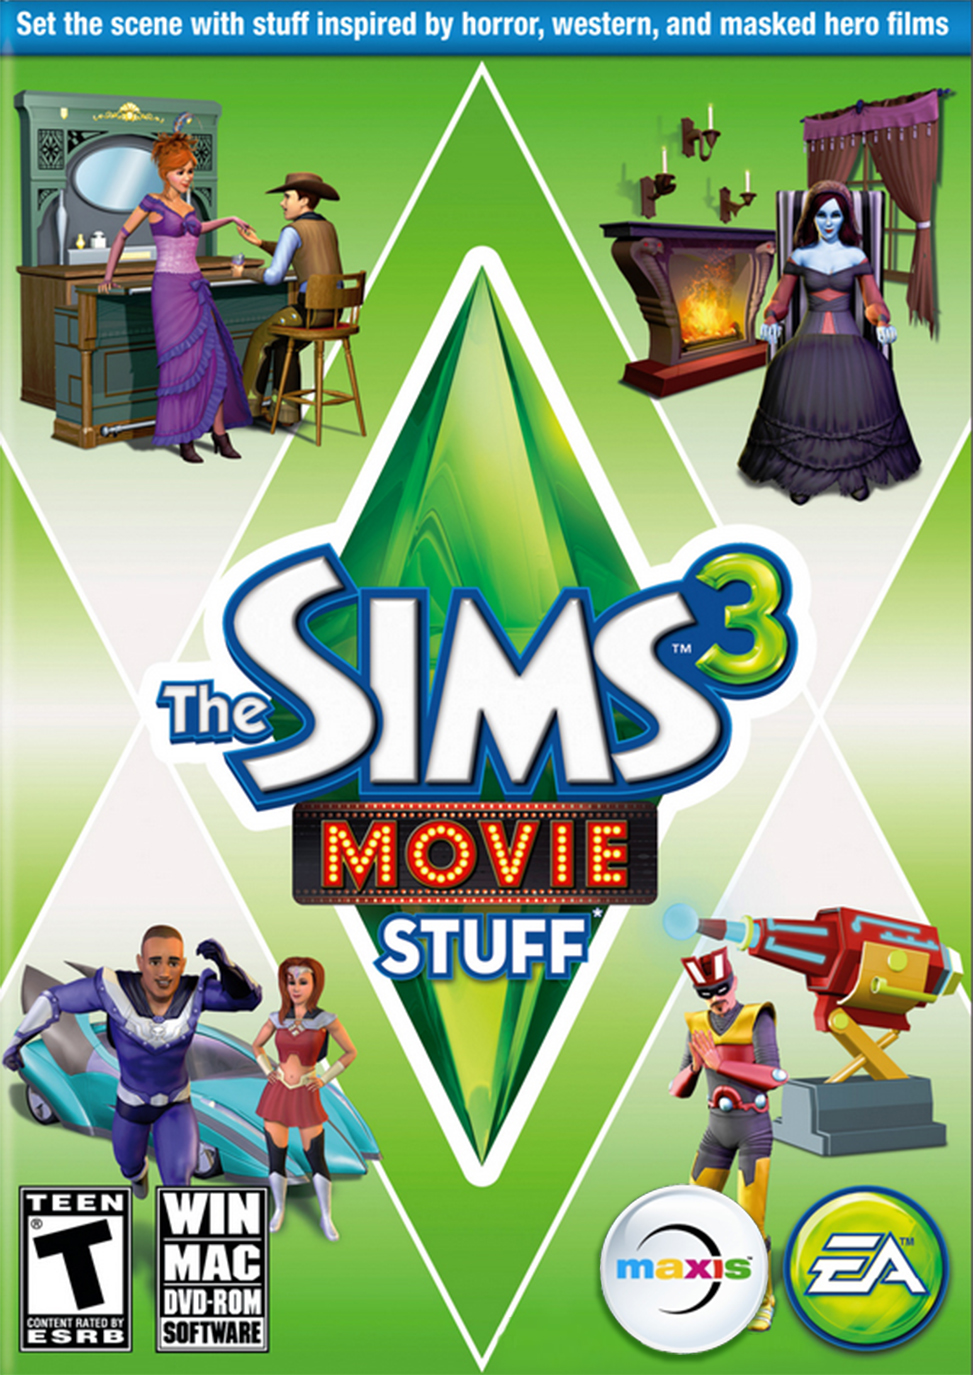 http://vignette1.wikia.nocookie.net/sims/images/2/20/The_Sims_3_Movie_Stuff_Cover.jpg/revision/latest?cb=20130724121943